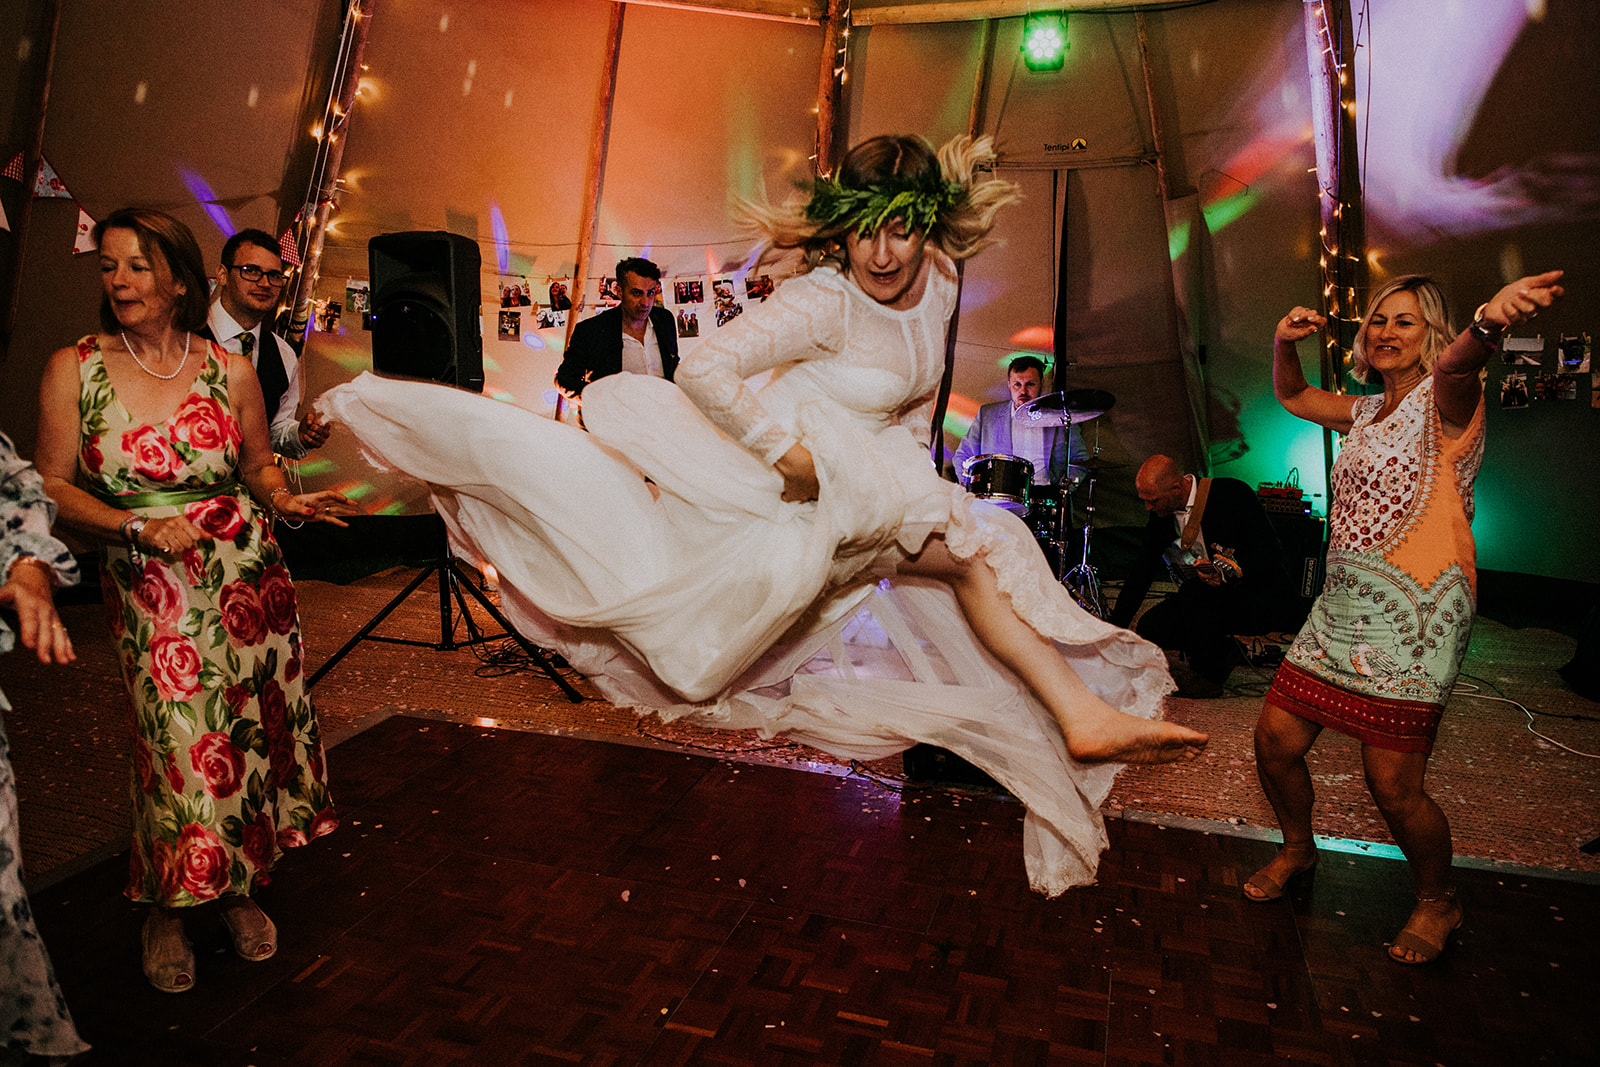 Bride doing jump in the middle of the dance floor